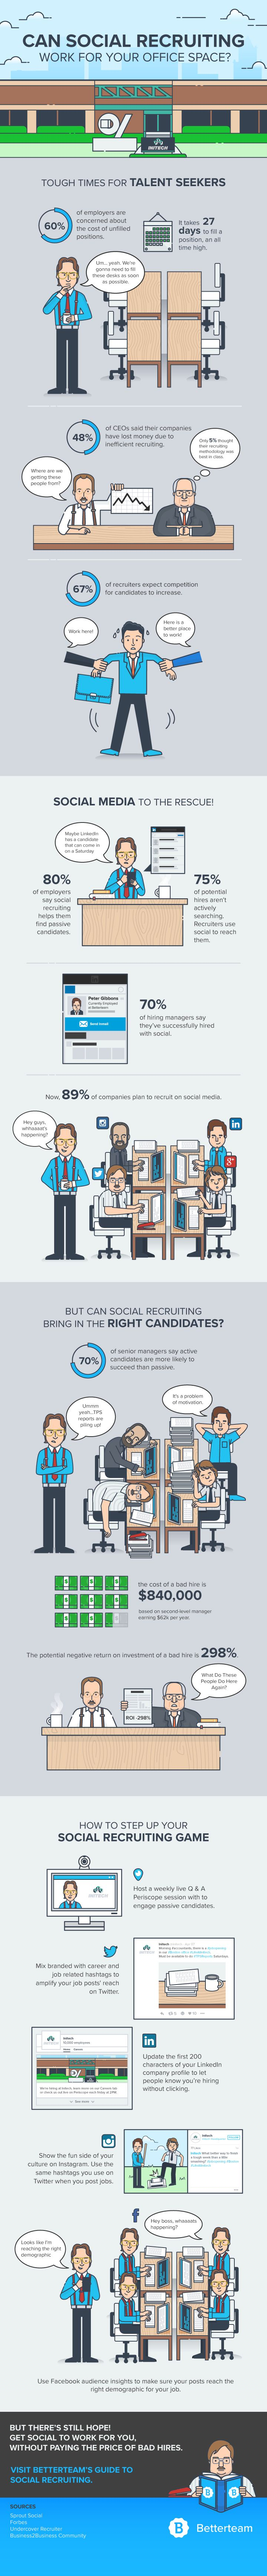 Can Social Recruiting Work For Your Office Space? #Infographic